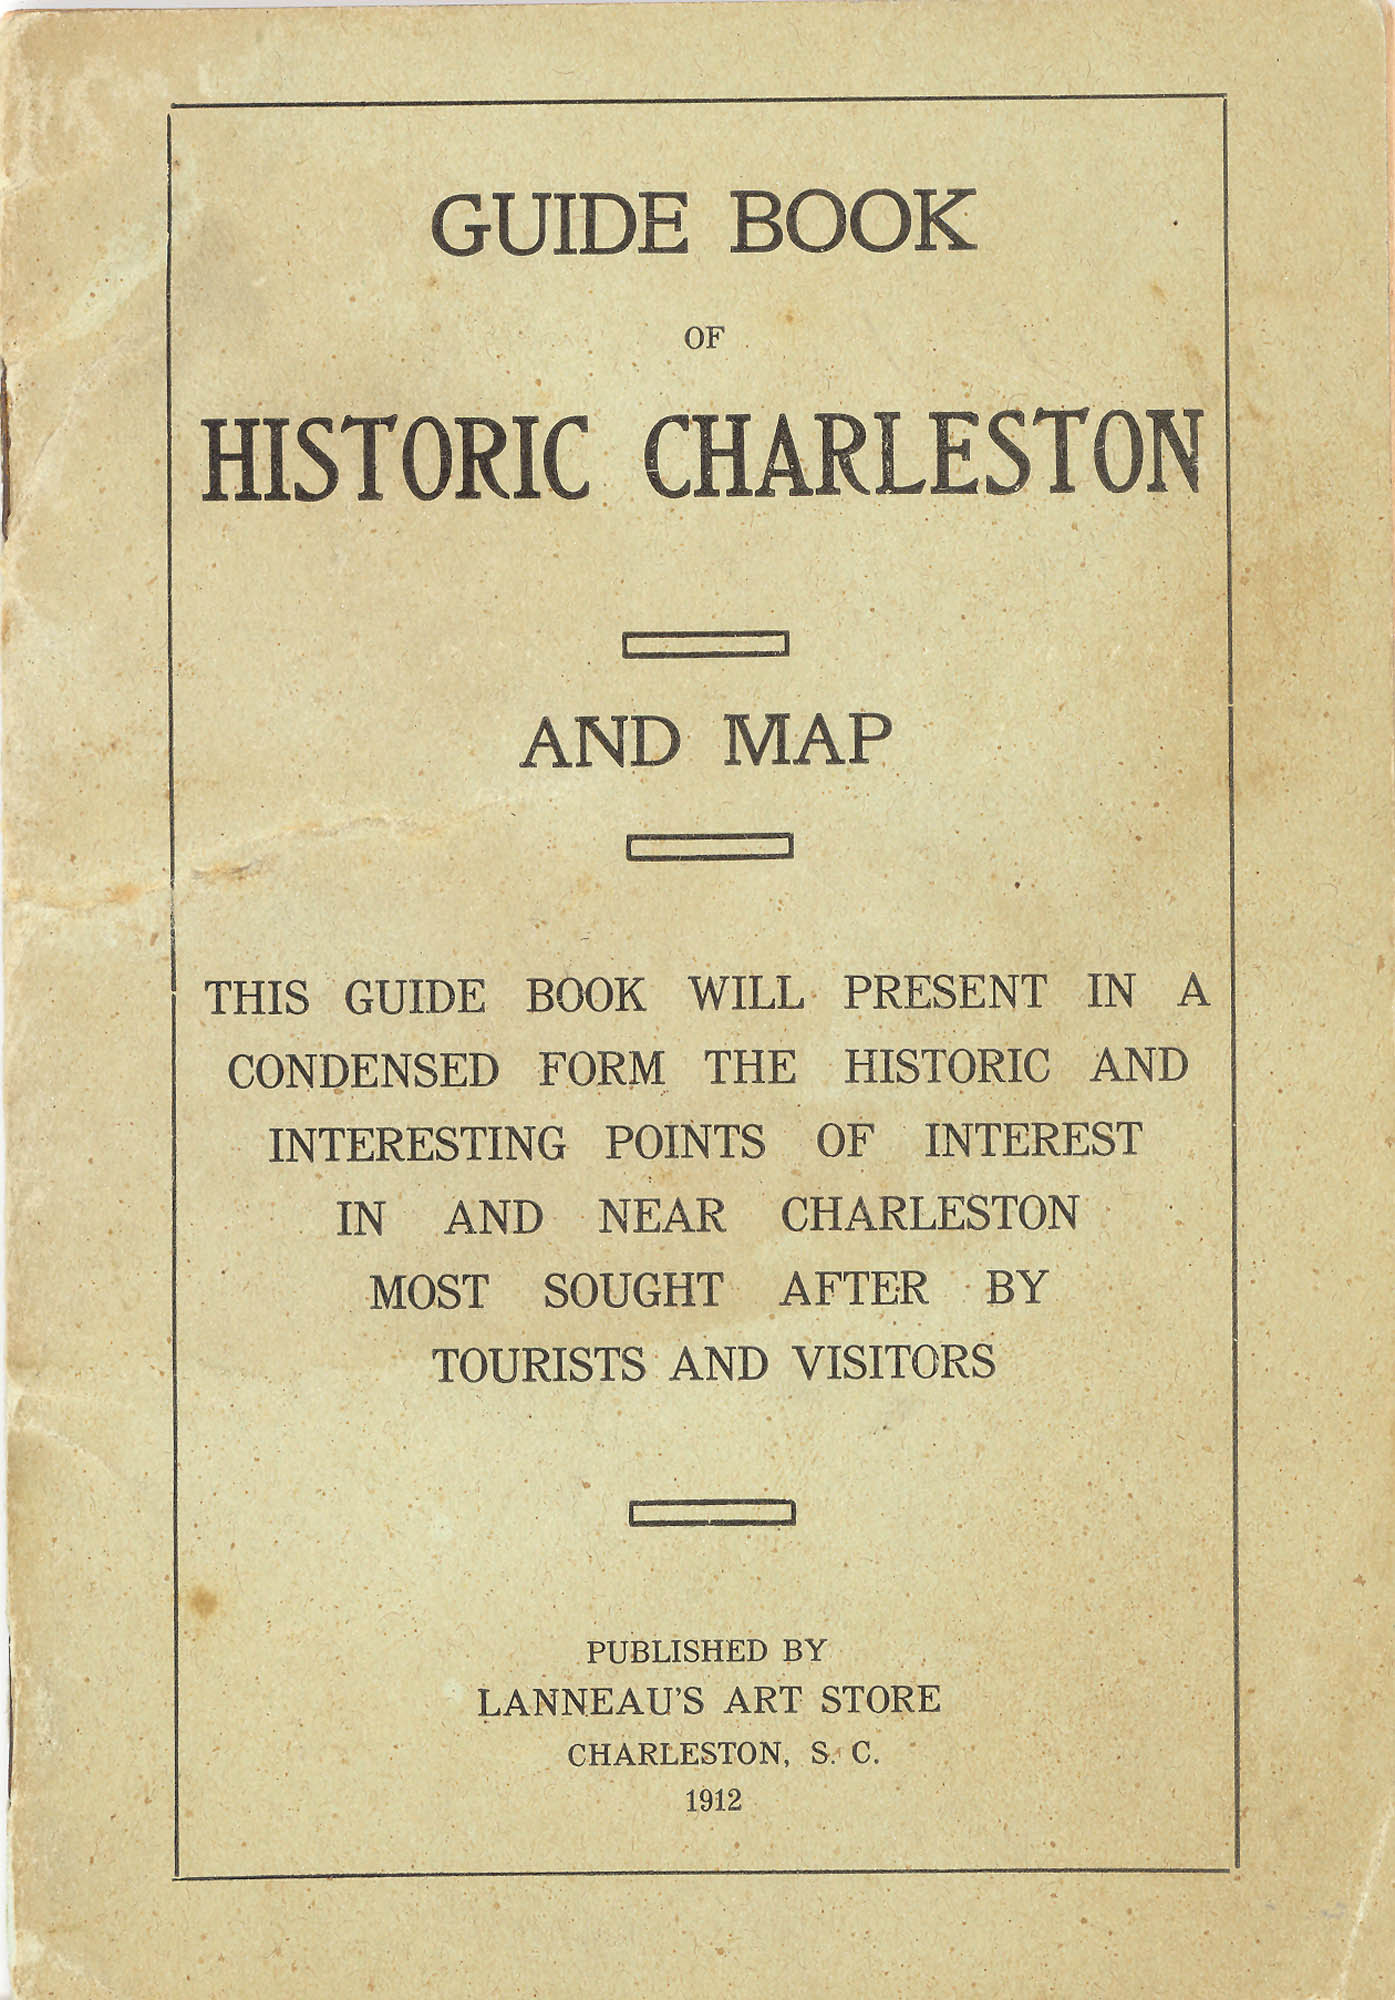 A Brief Sketch of Historic Charleston